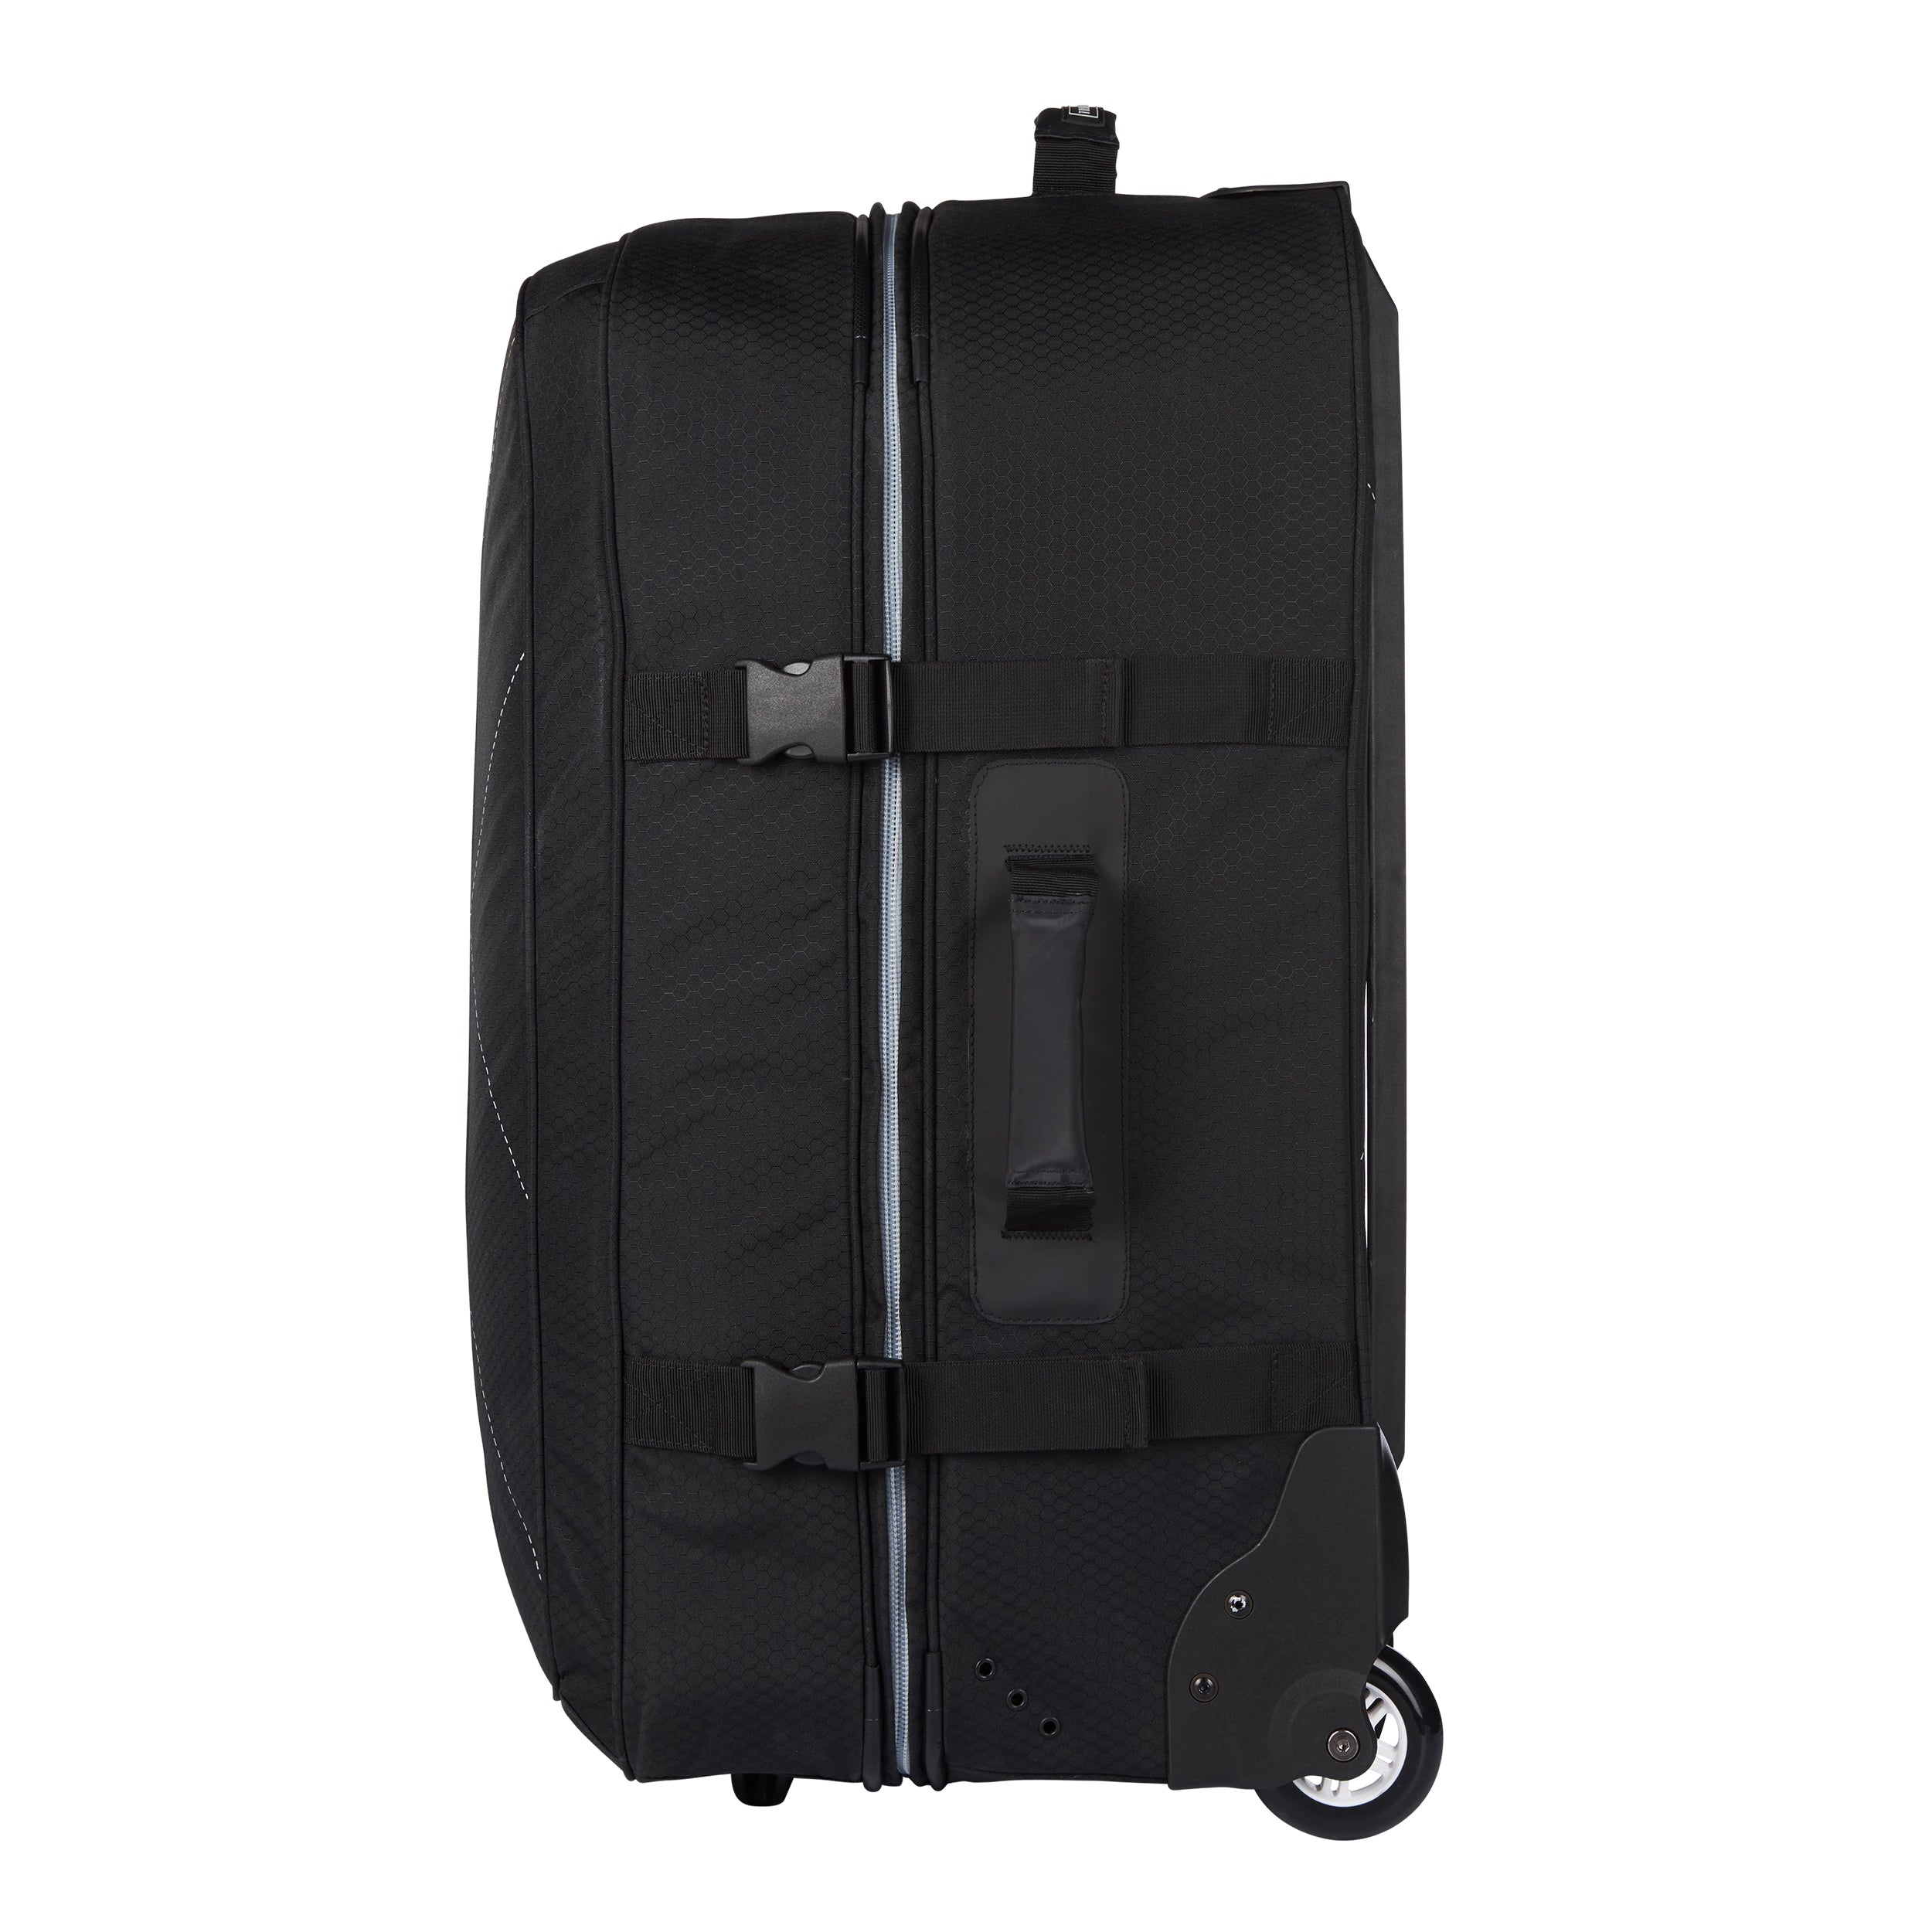 Strong travel bag with wheels